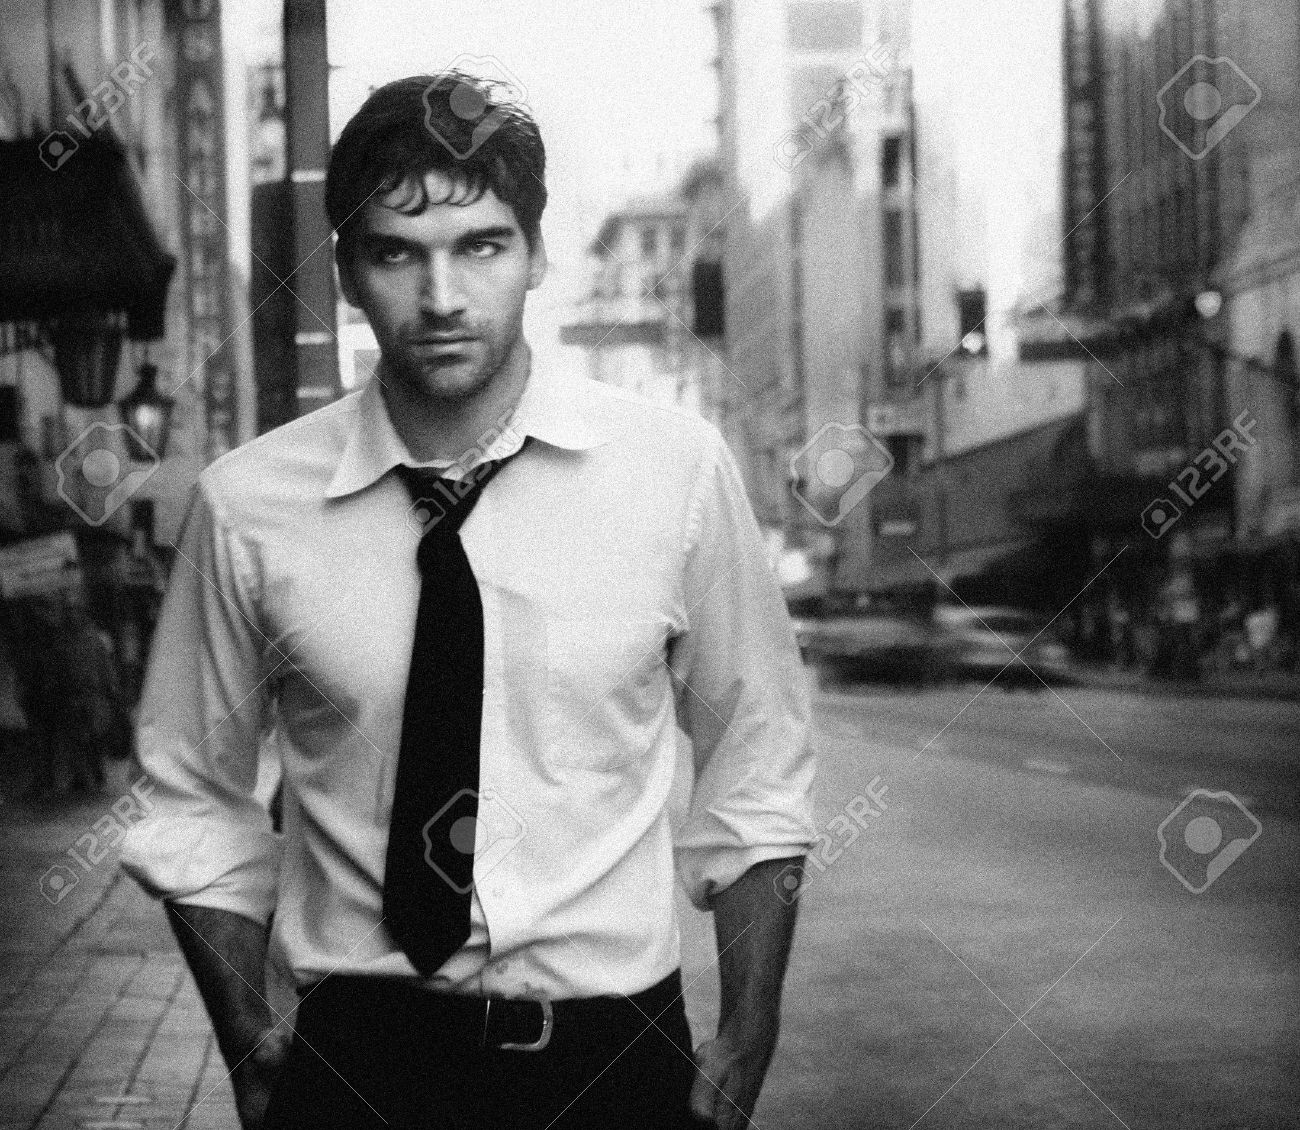 Stock photo vintage stylized black and white photo of young male model against city street photo has an intentional film grain